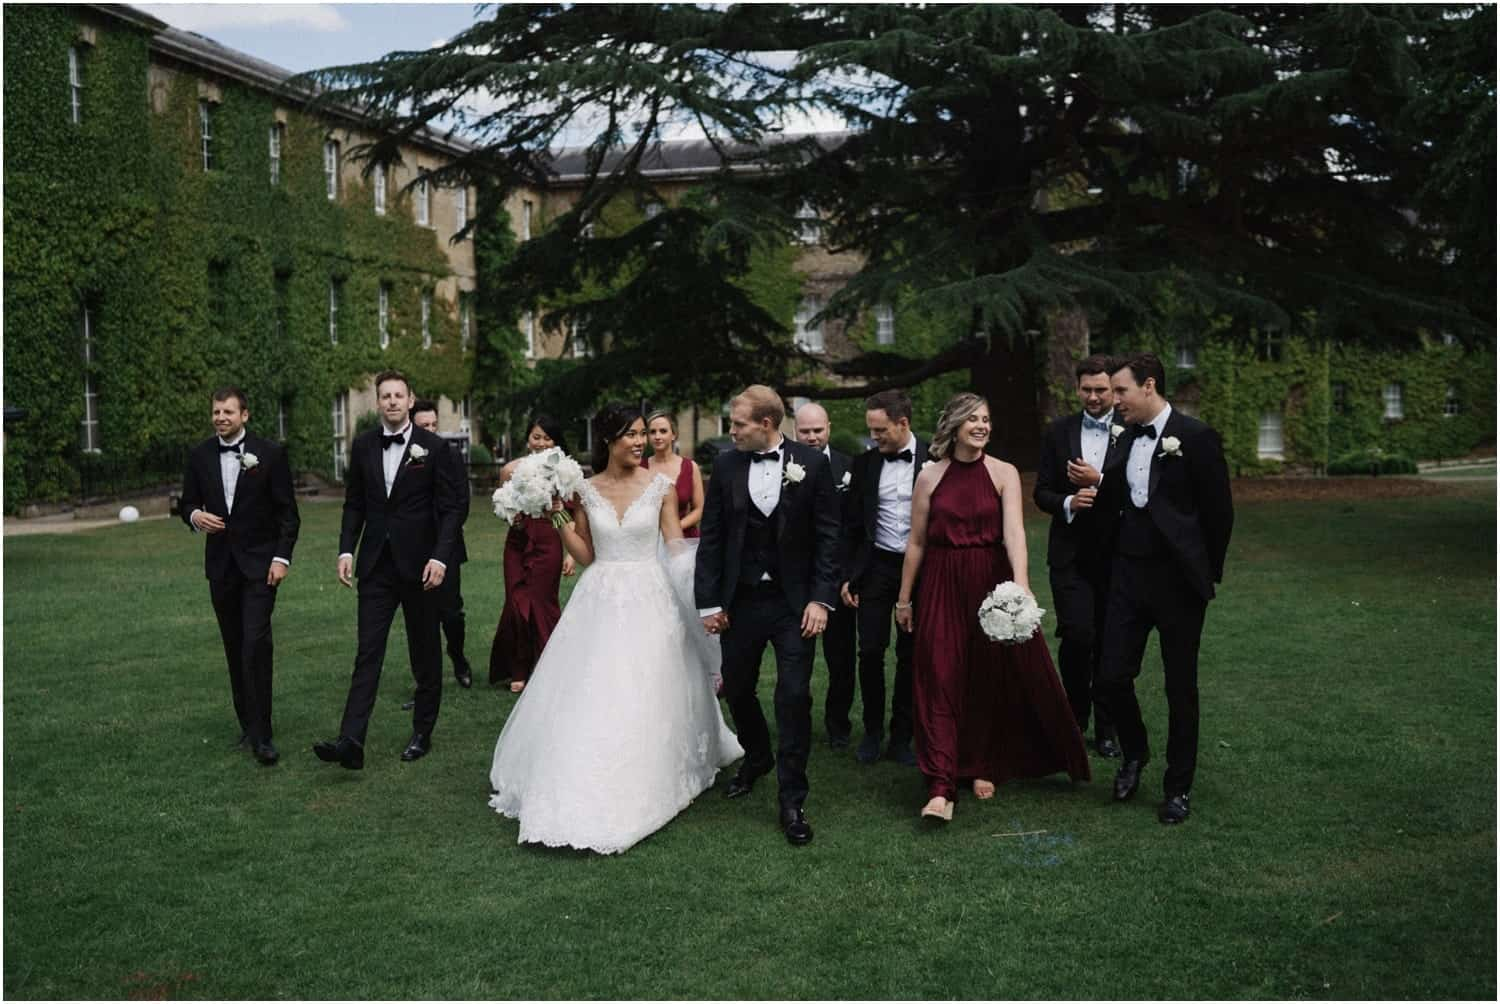 A bridal party walk through beautiful grounds at a De Vere Beaumont Estate wedding in Windsor